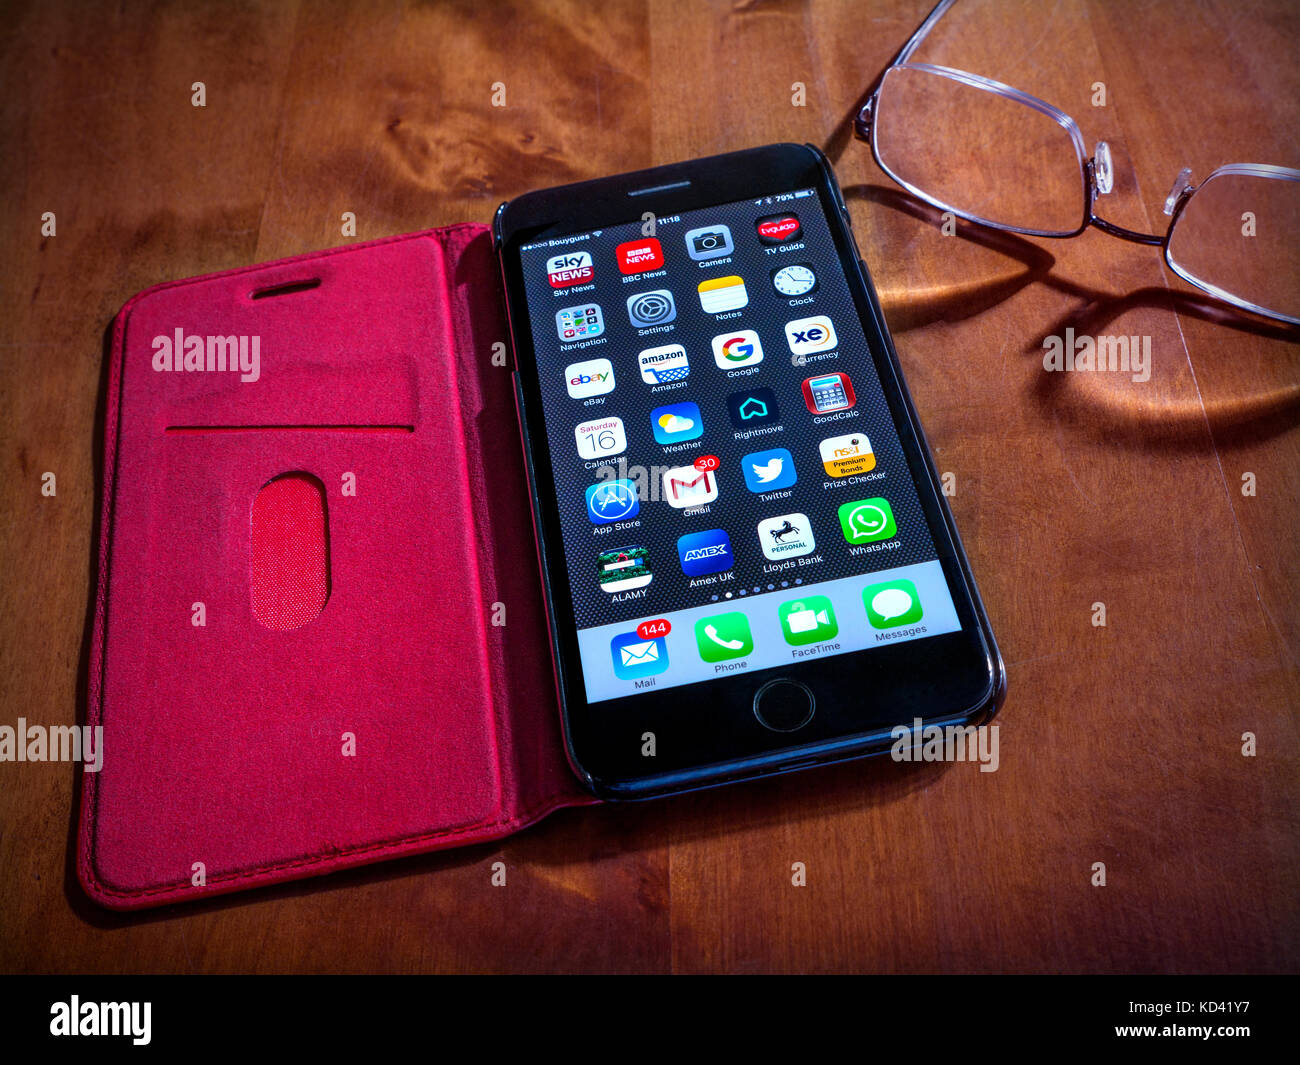 iPhone 7 Plus Piano Black Glossy with screen apps, in red leather flip-open case placed on table in shaft of light - Stock Image